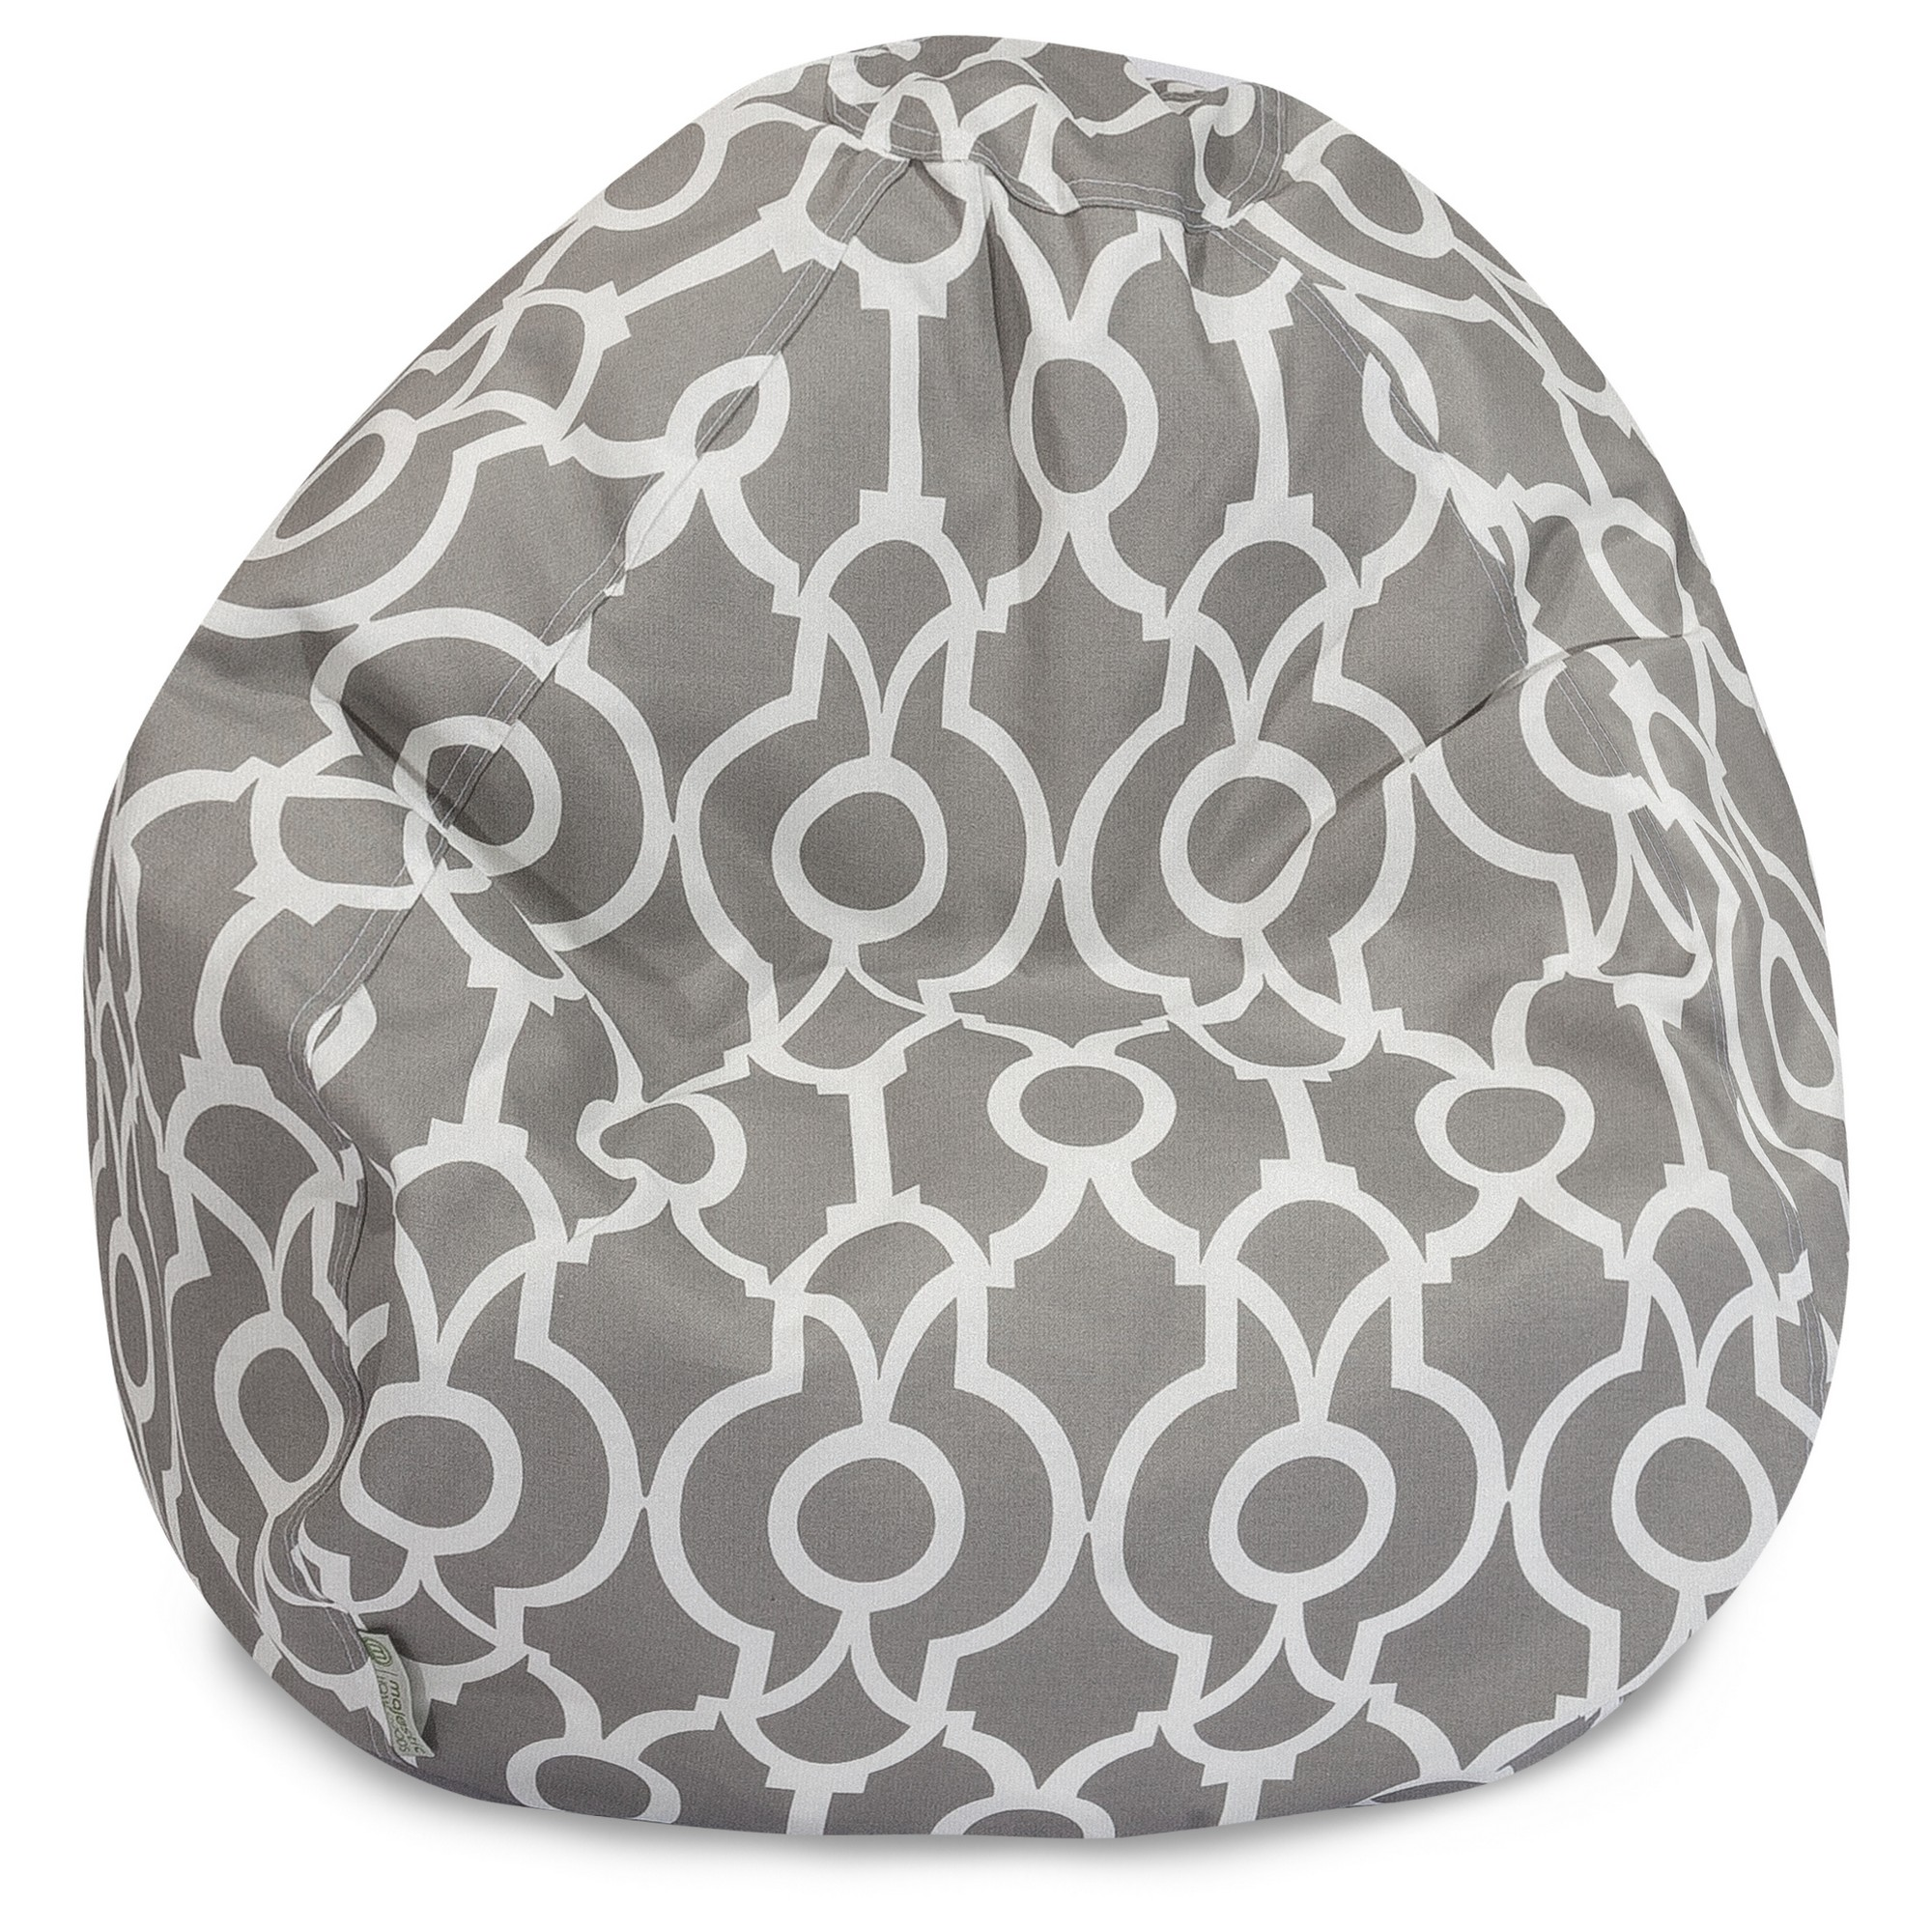 Majestic Home Goods Athens Large Classic Bean Bag Chair, Multiple Colors